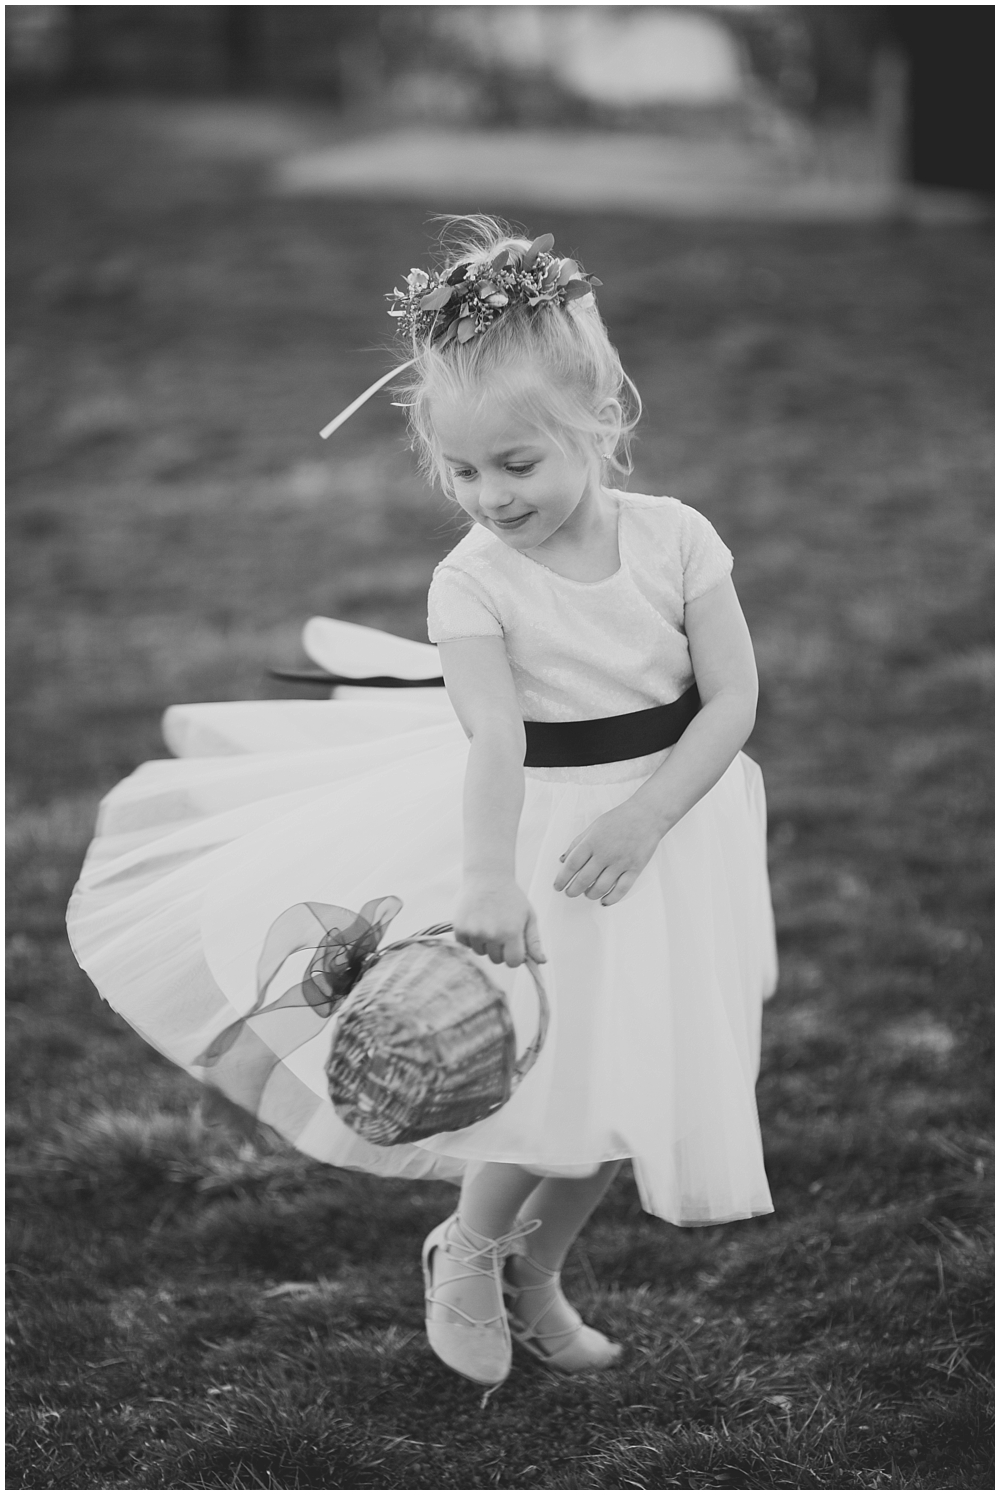 PattengalePhotography_StLouis_Wedding_Photographer_Boho_Hipster_Urban_Style_StCharles_Missouri_BullRunWinery_Charlottesville_Ashley&Sawyer_0109.jpg